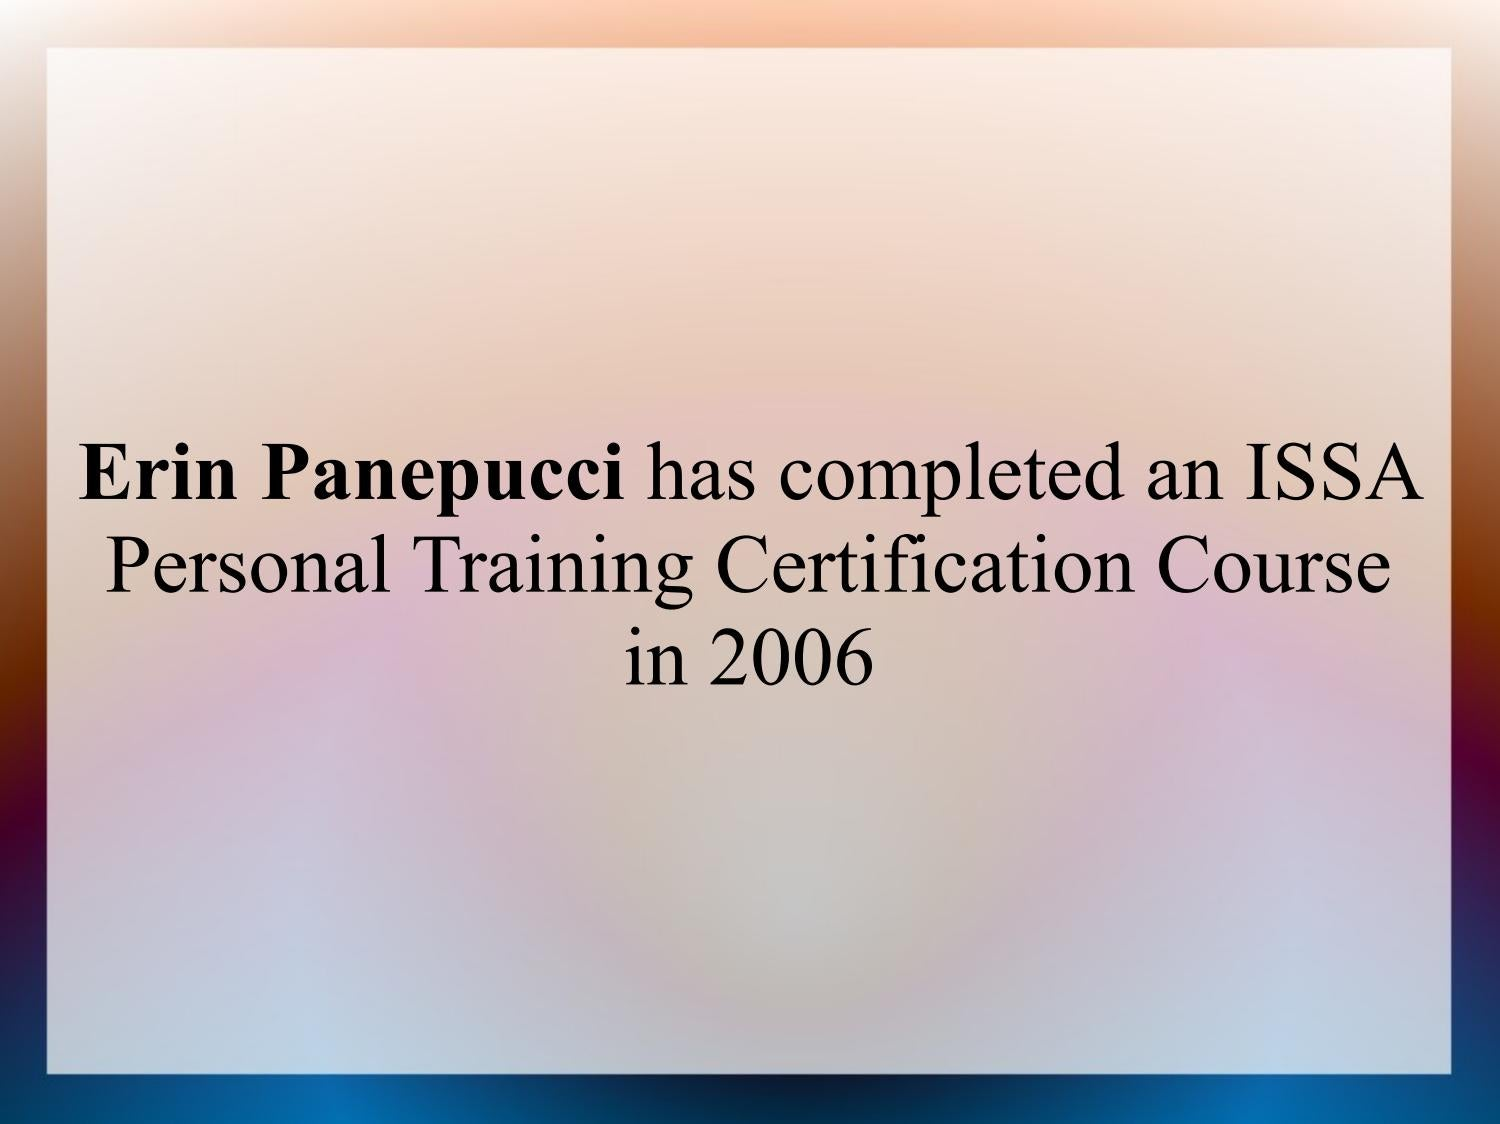 Erin panepucci has completed an issa personal training erin panepucci has completed an issa personal training certification course in 2006 by leo schey issuu xflitez Image collections